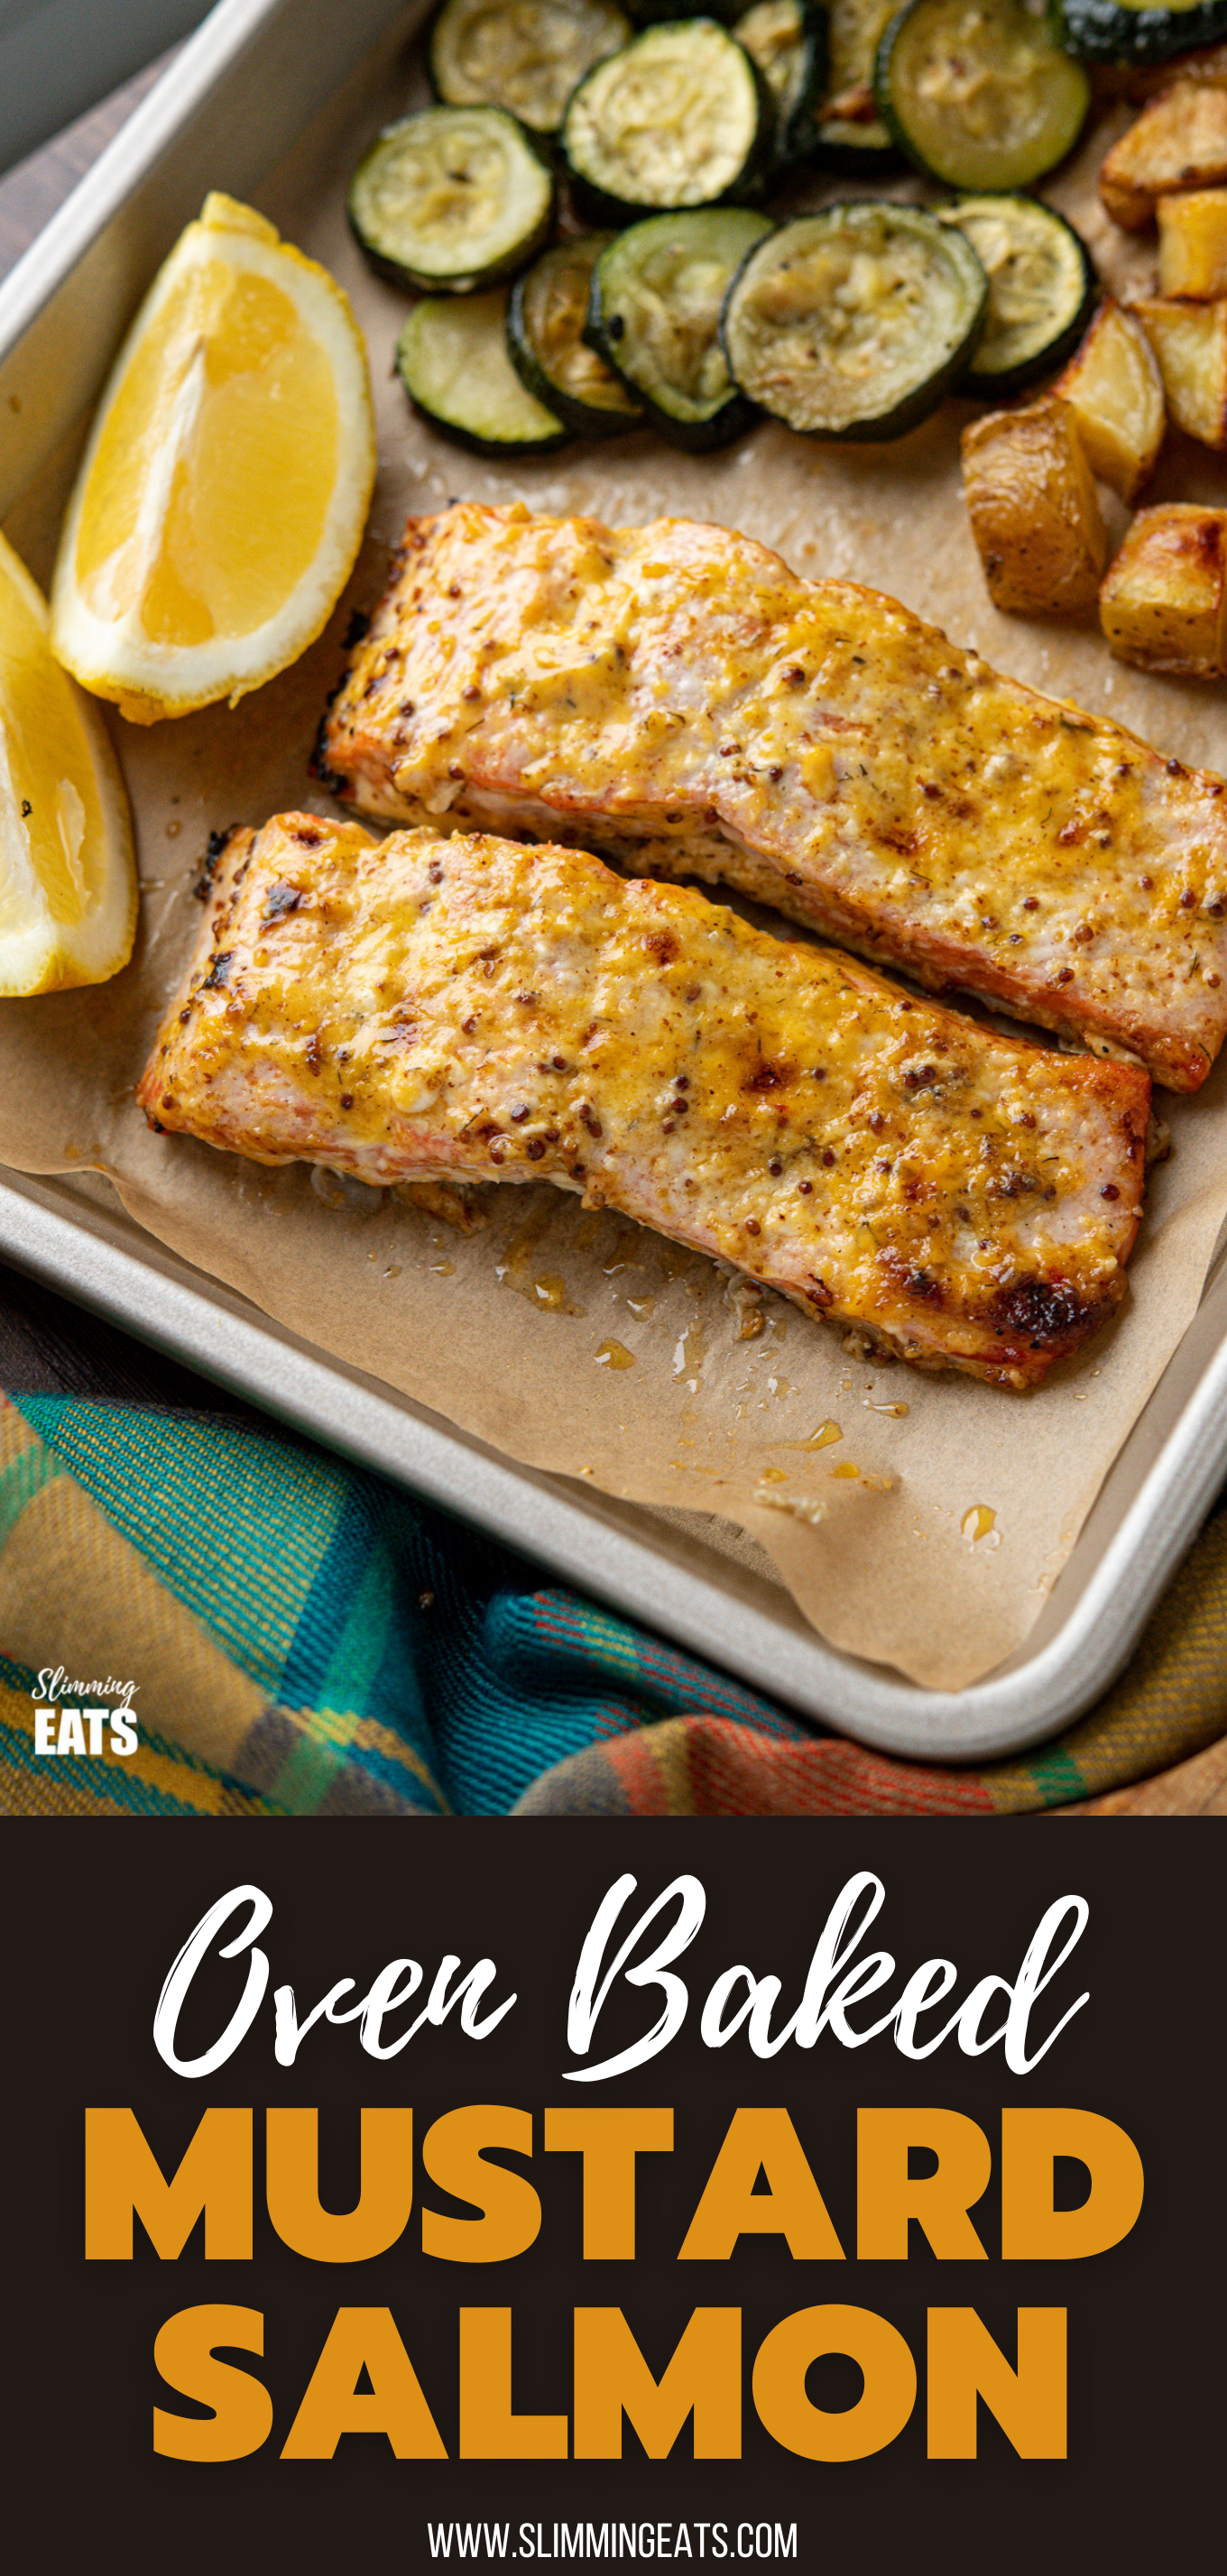 Oven Baked Mustard Salmon Fillets on parchment lined tray with potatoes, zucchini and lemon wedge